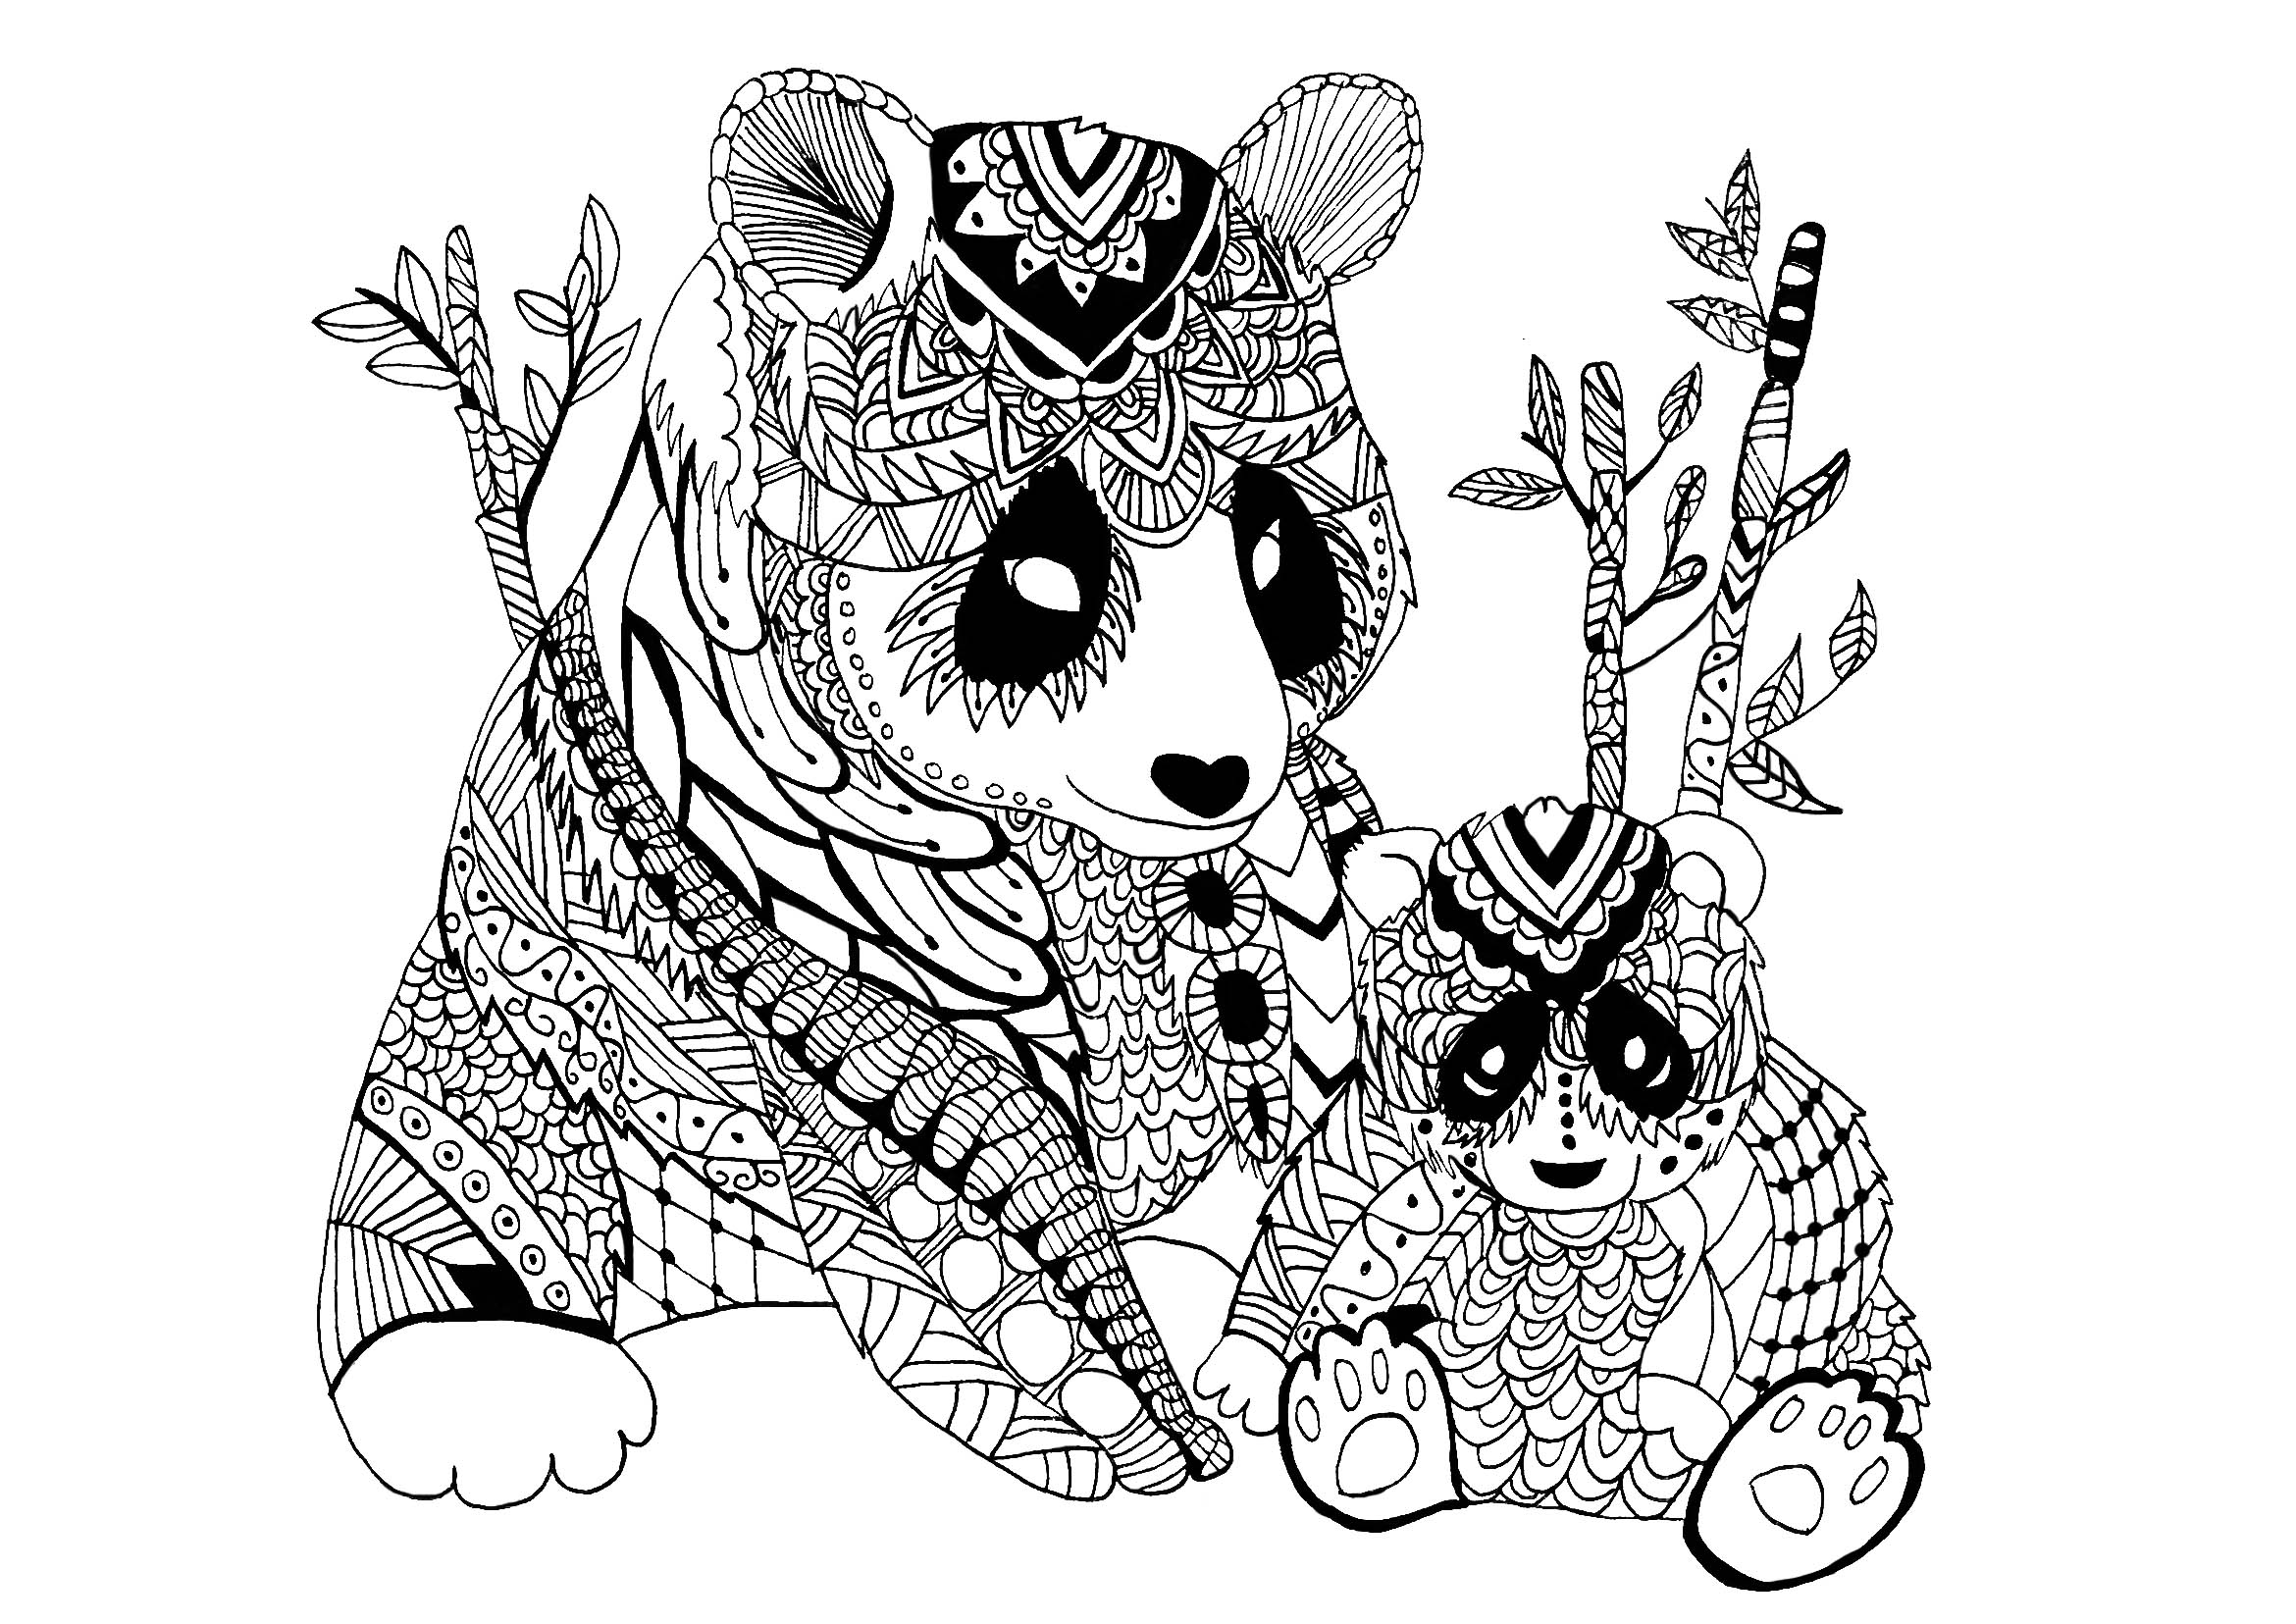 coloring pages zentangle zentangle to print for free zentangle kids coloring pages zentangle coloring pages